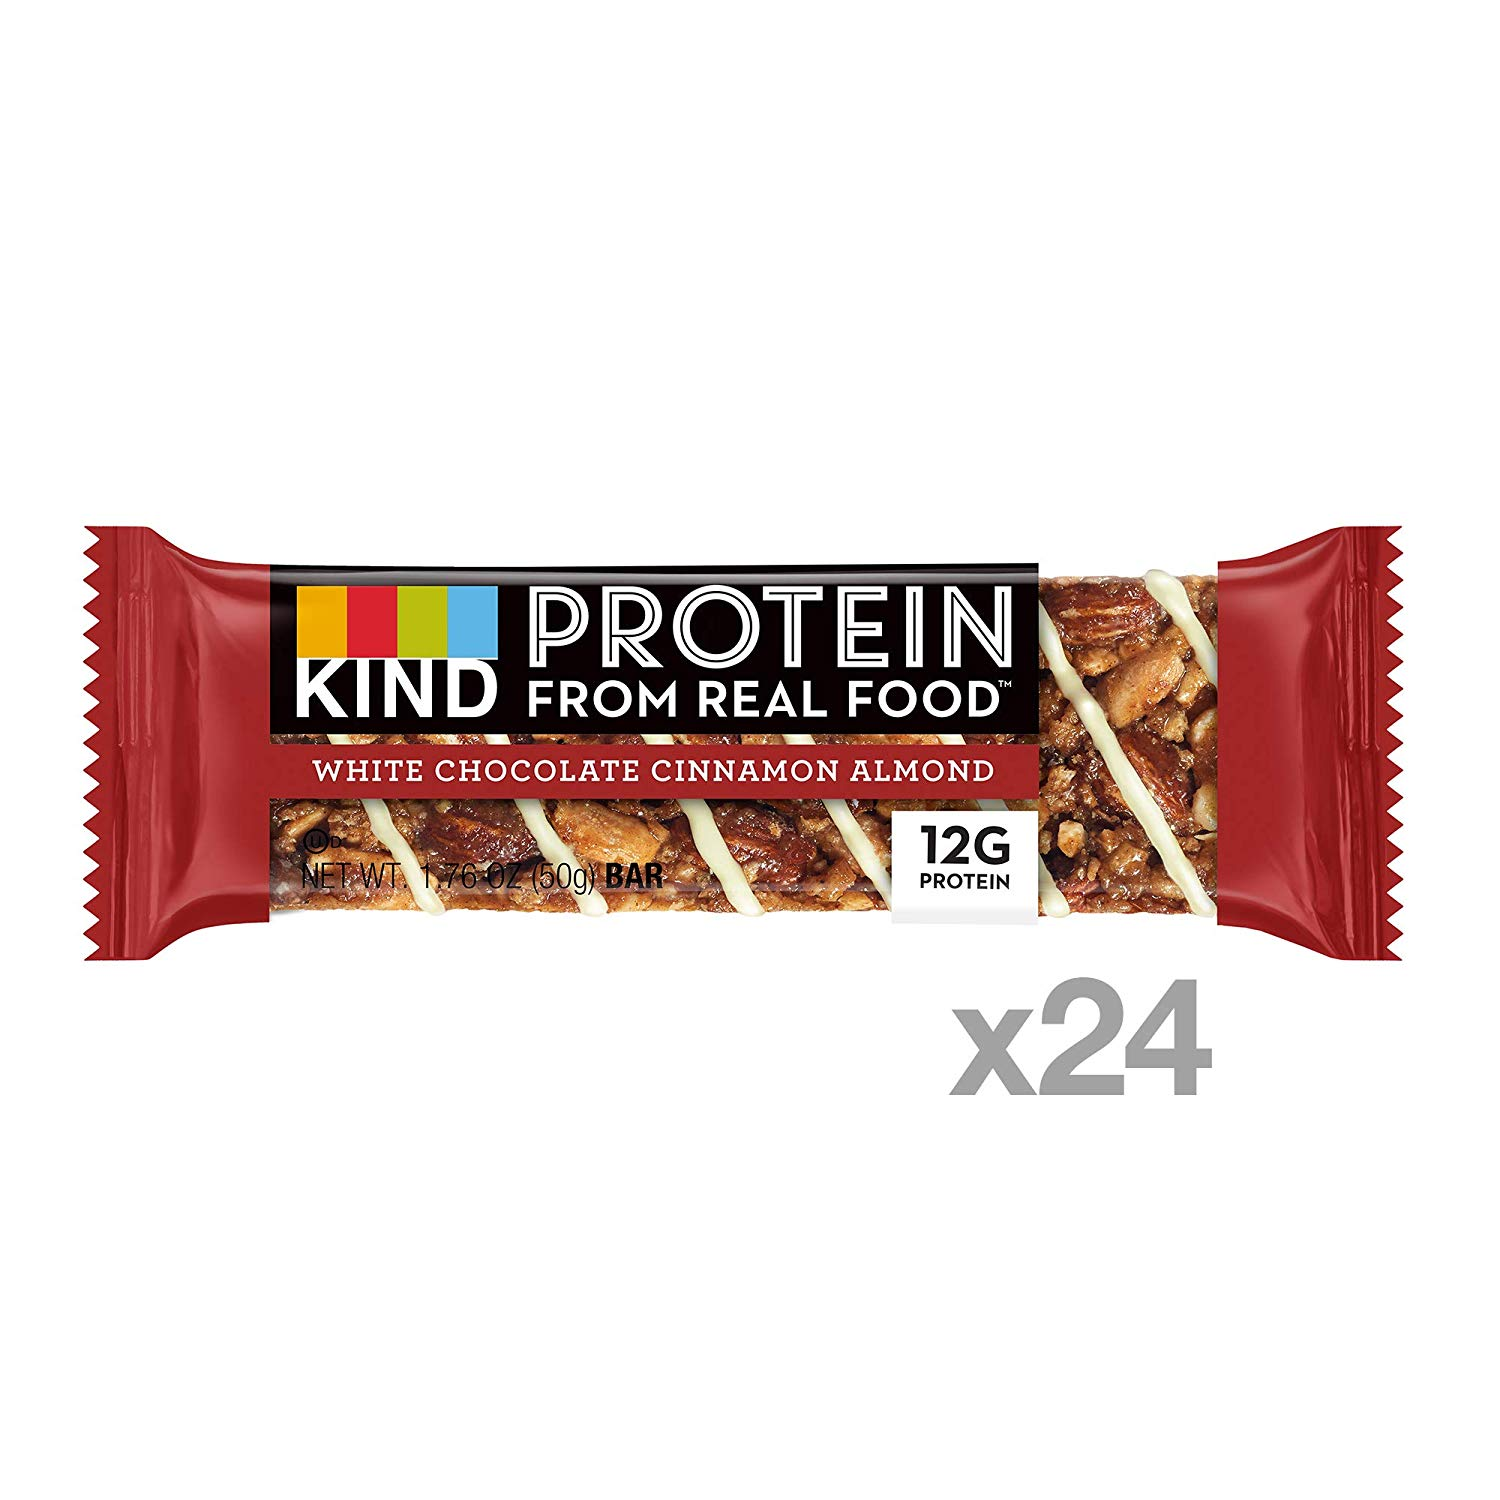 KIND Energy Protein Bars white chocolate cinnamon almond